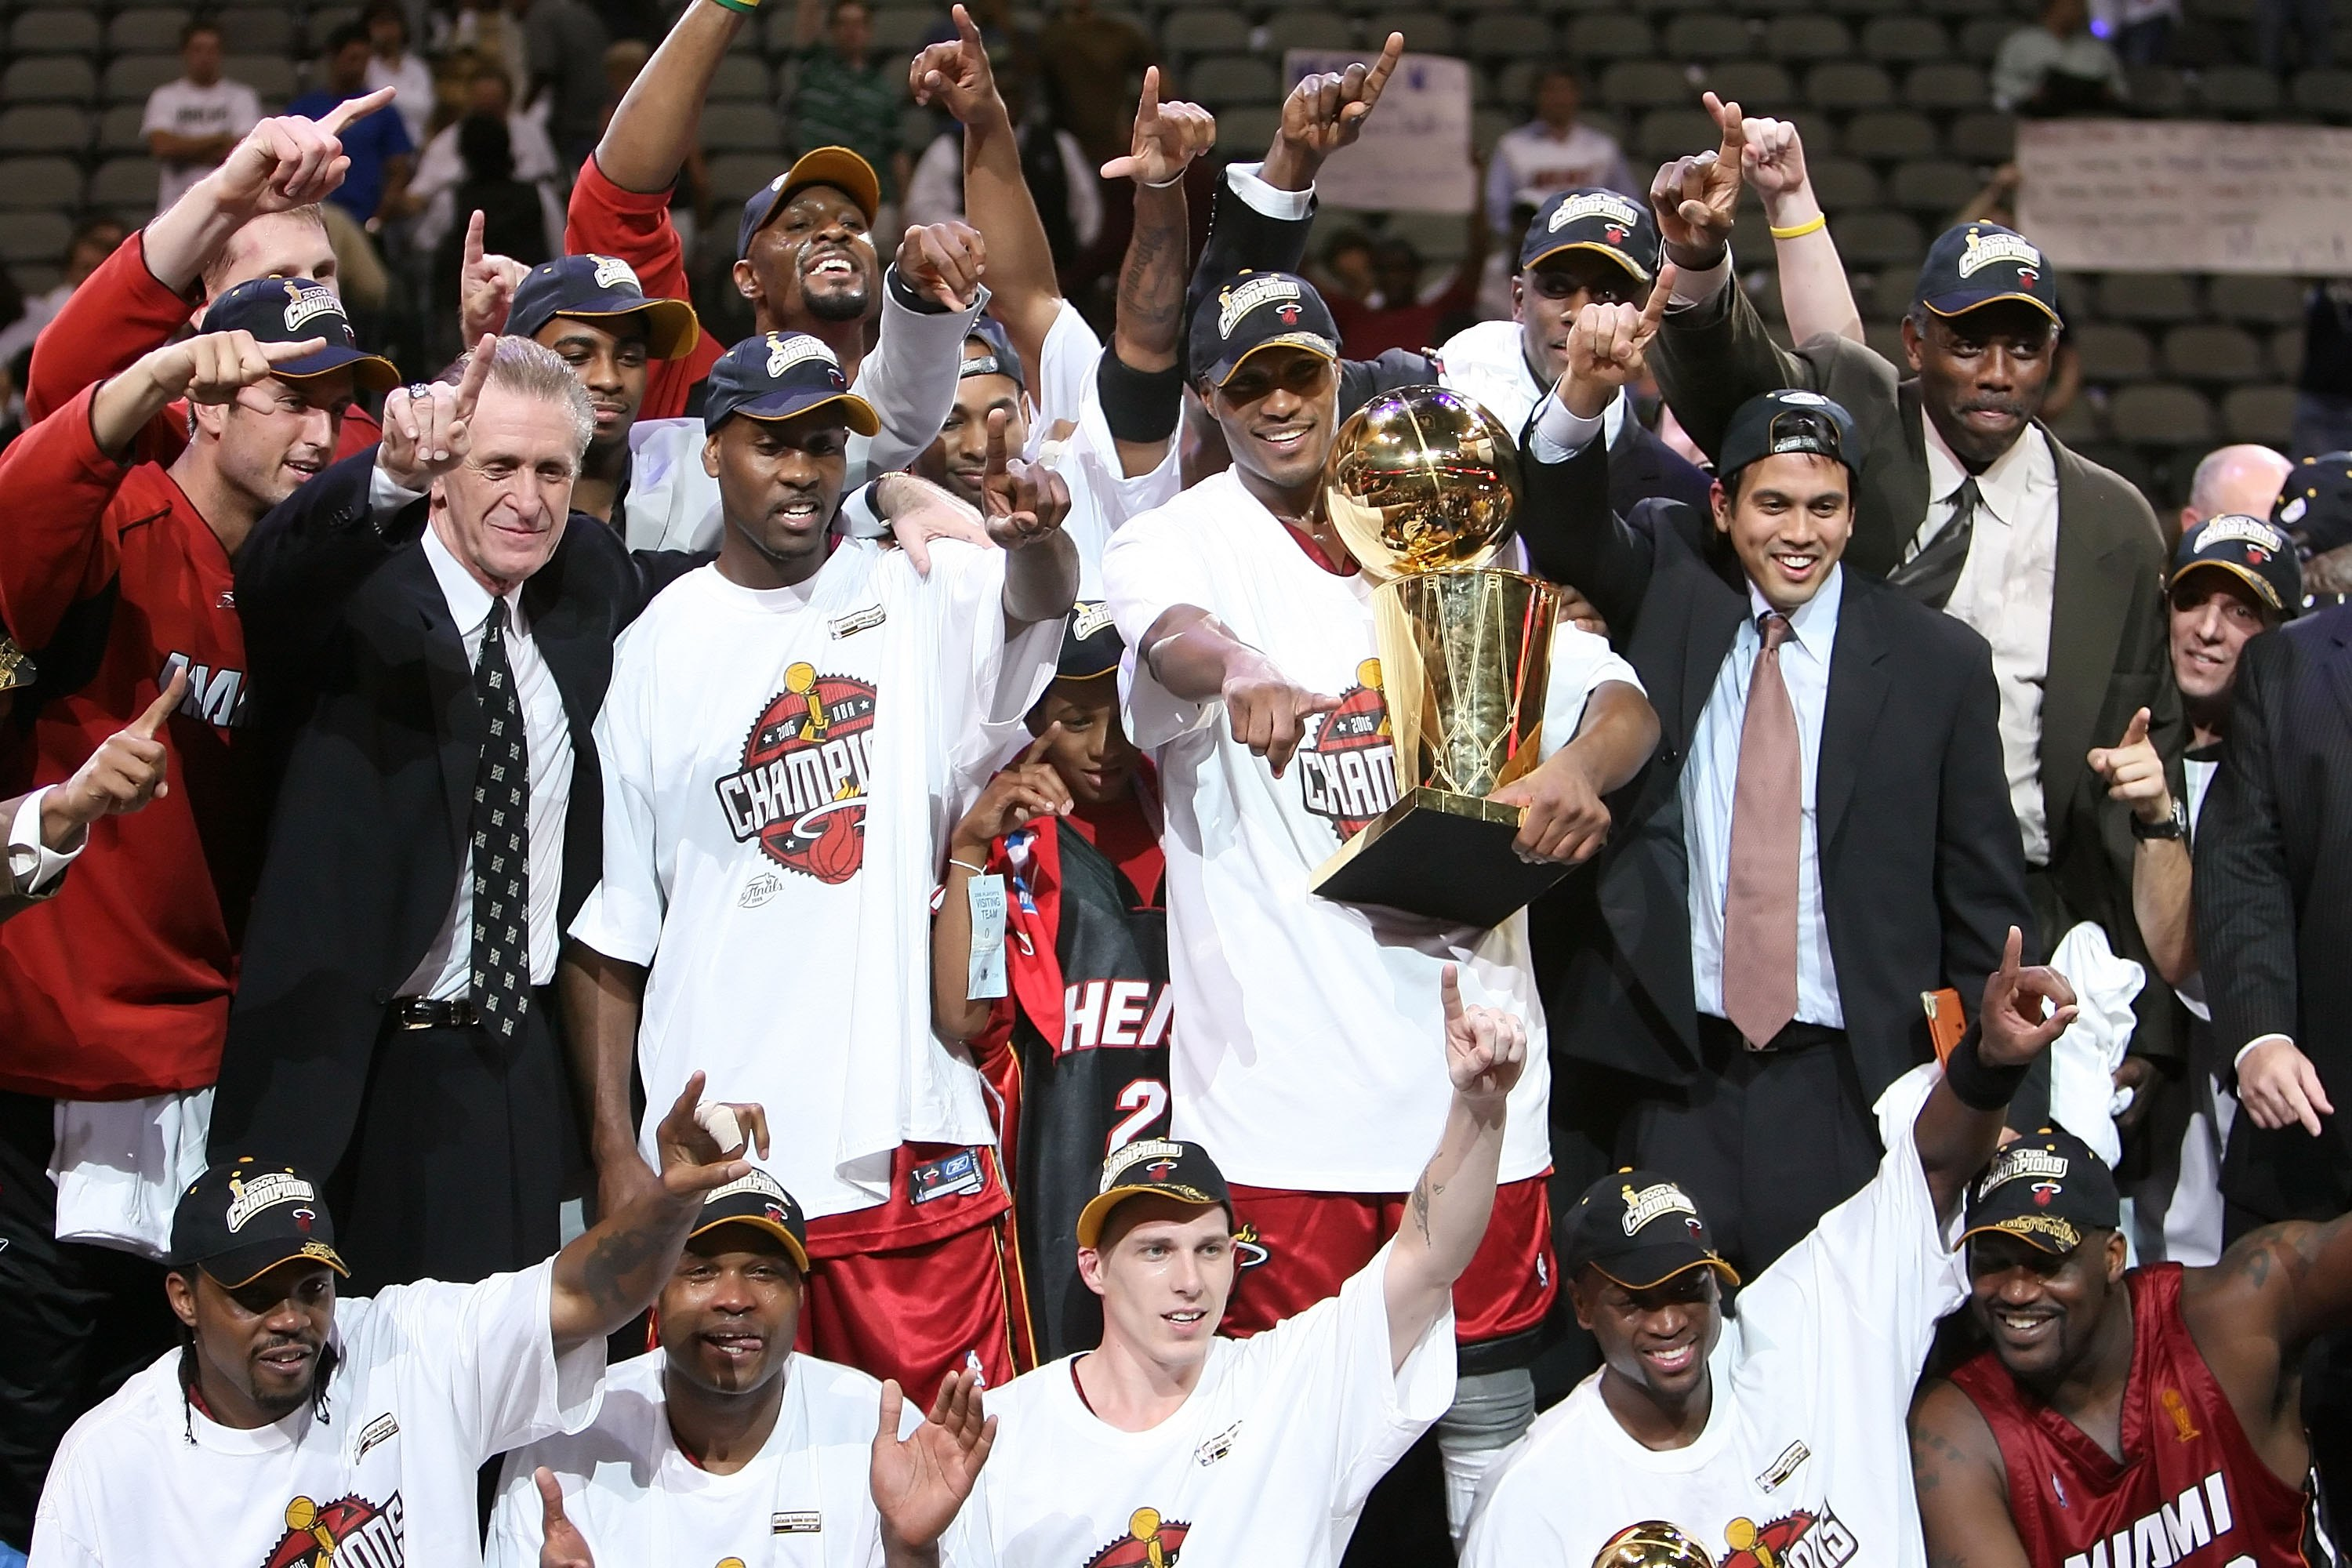 DALLAS - JUNE 20:  The Miami Heat celebrate as they receive the Larry O'Brien trophy after the Heat defeated the Dallas Mavericks in game six of the 2006 NBA Finals on June 20, 2006 at American Airlines Center in Dallas, Texas.  The Heat won 95-92 and win